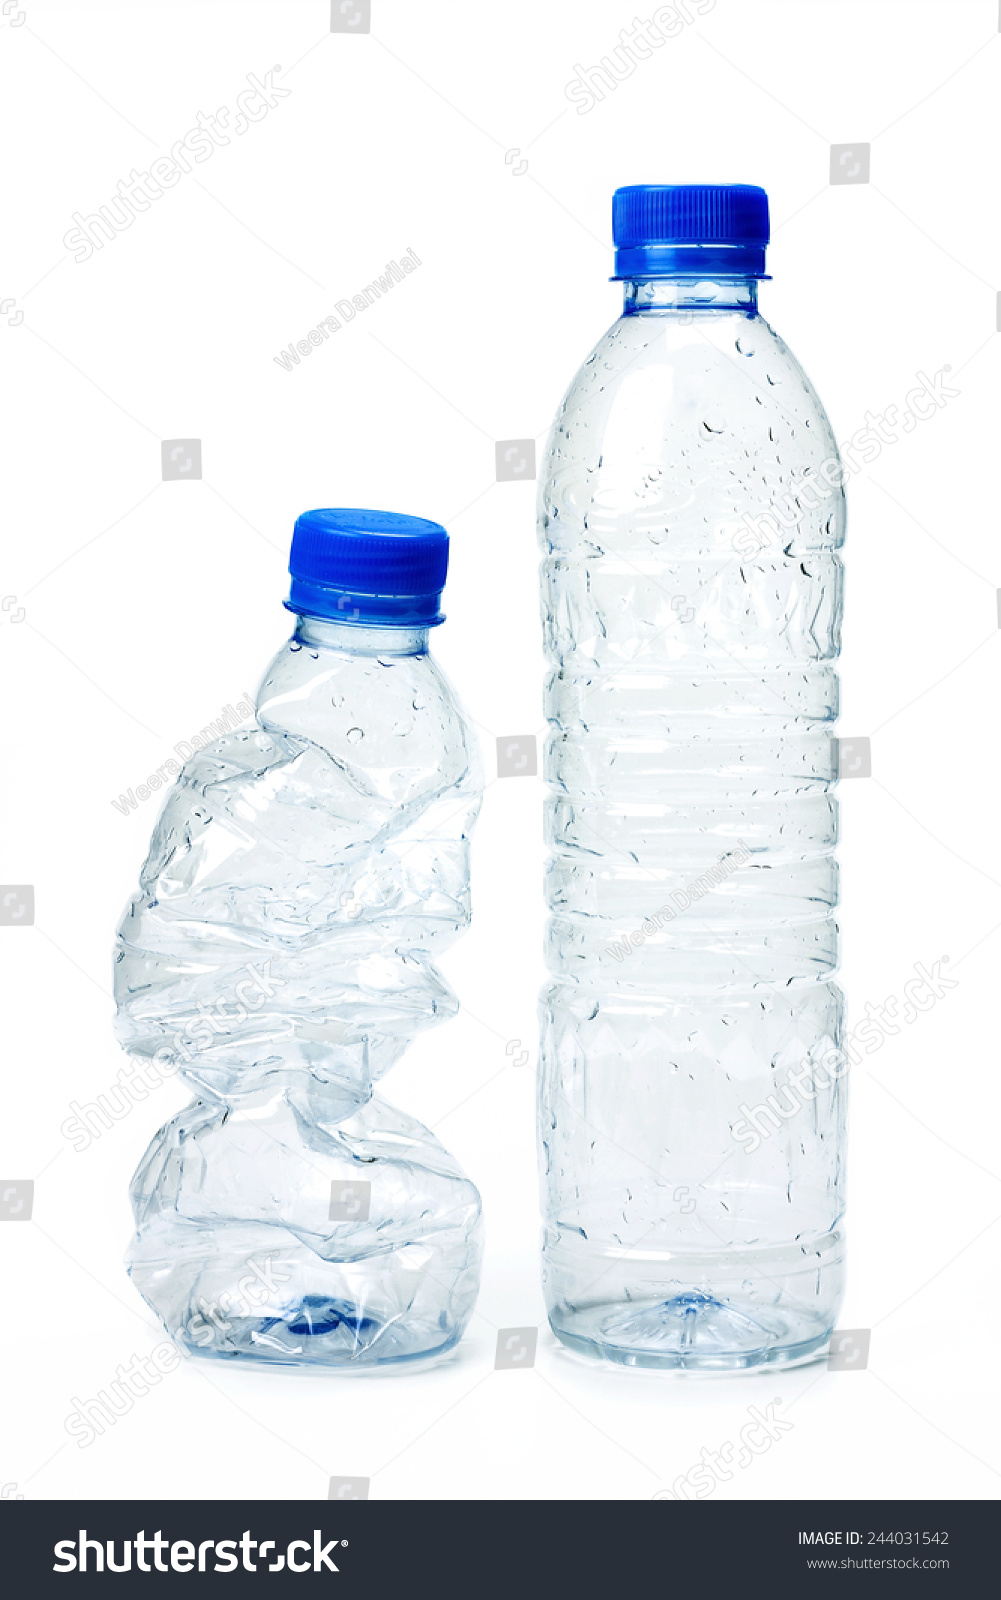 Plastic Bottle Recycling Used Plastic Bottle Recycling Stock Photo 244031542 Shutterstock